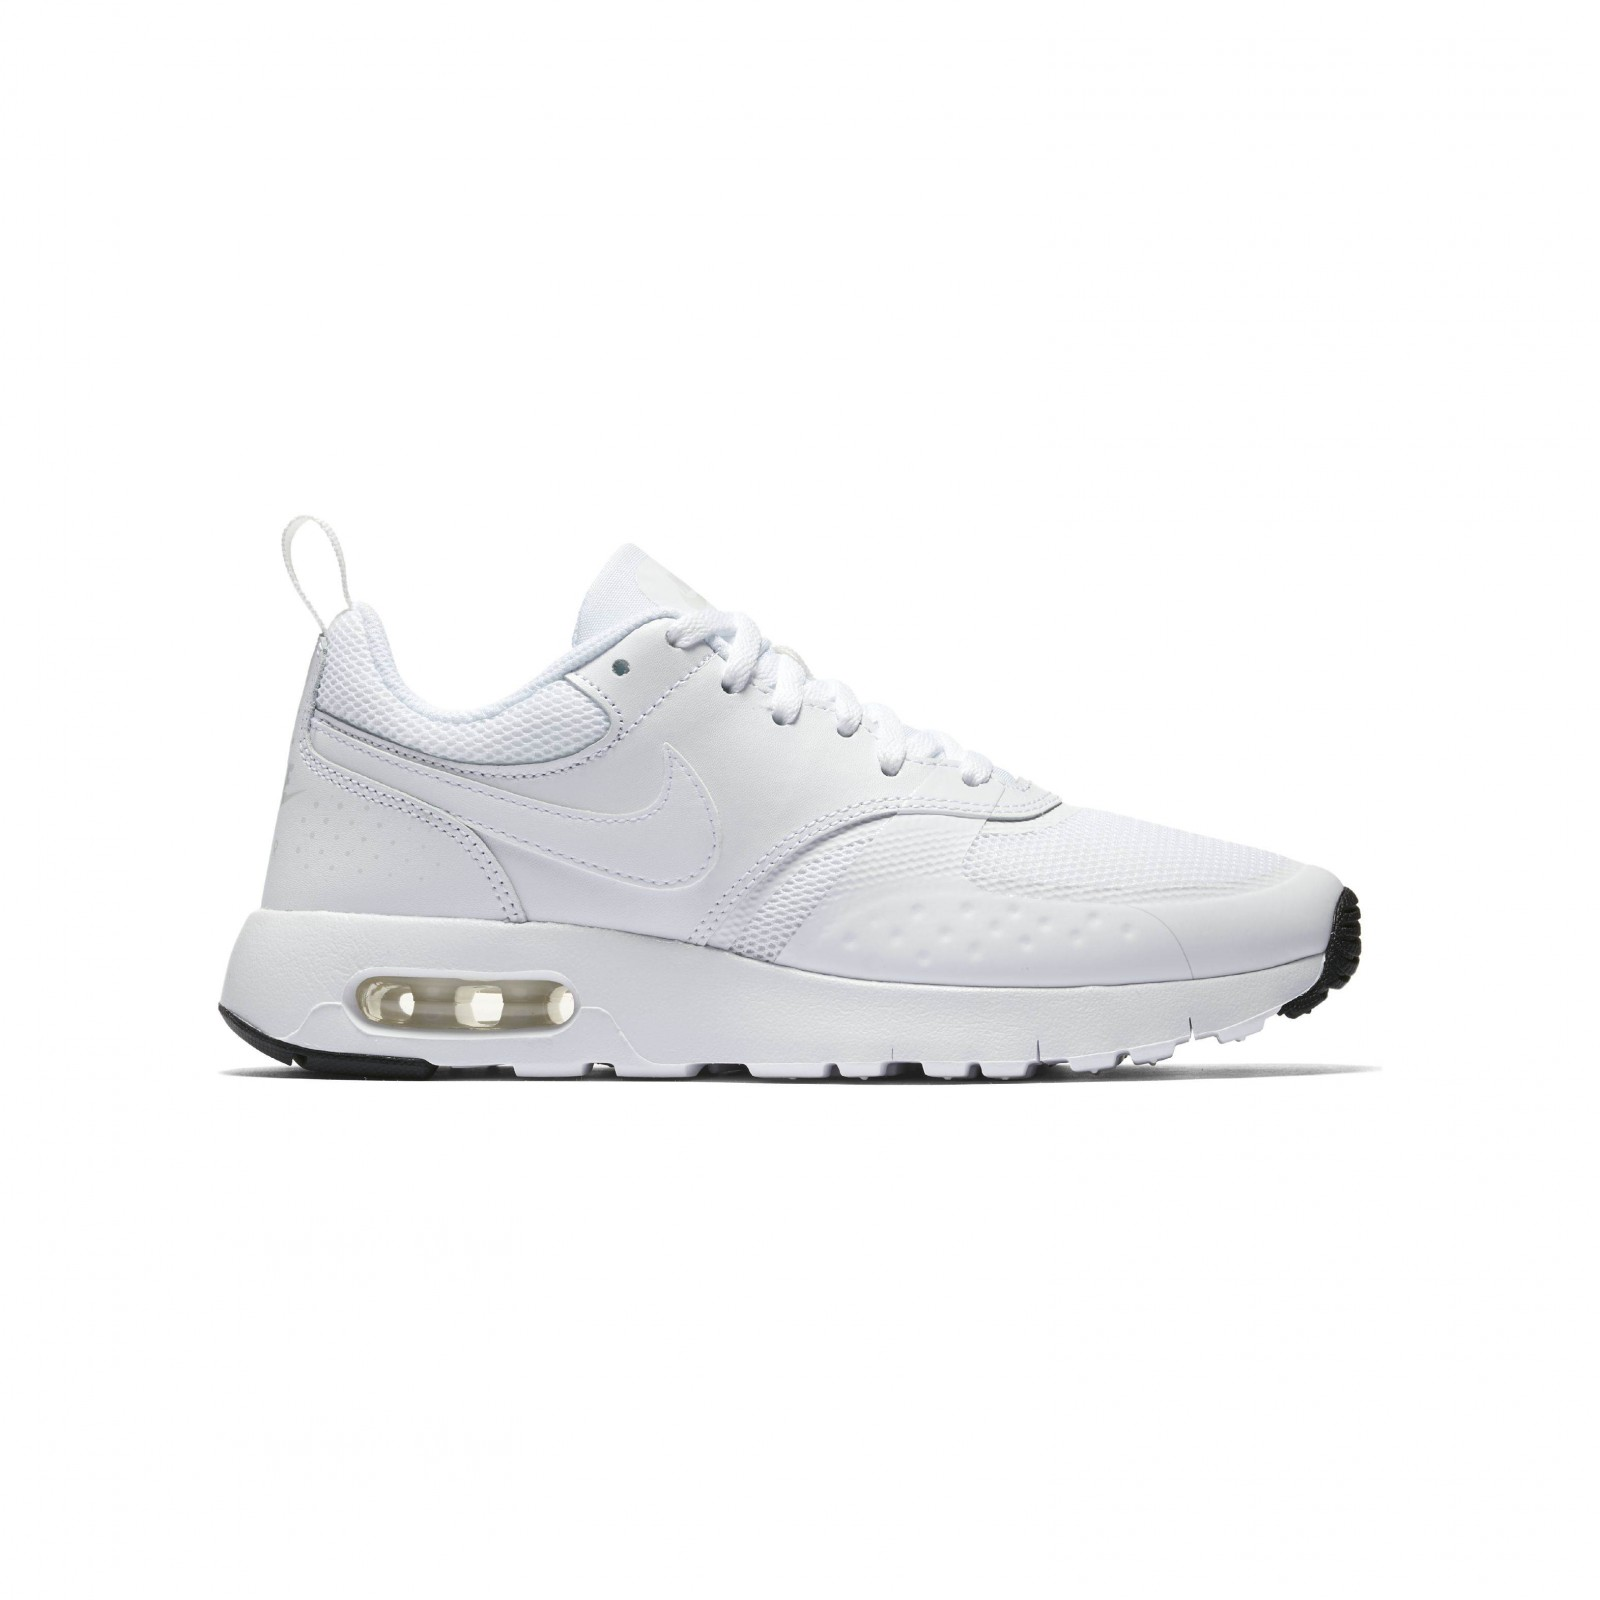 best website 34e3f f1814 ... Nike AIR MAX VISION (GS) WHITE/WHITE-PURE PLATINUM. -14%. Dětské ...